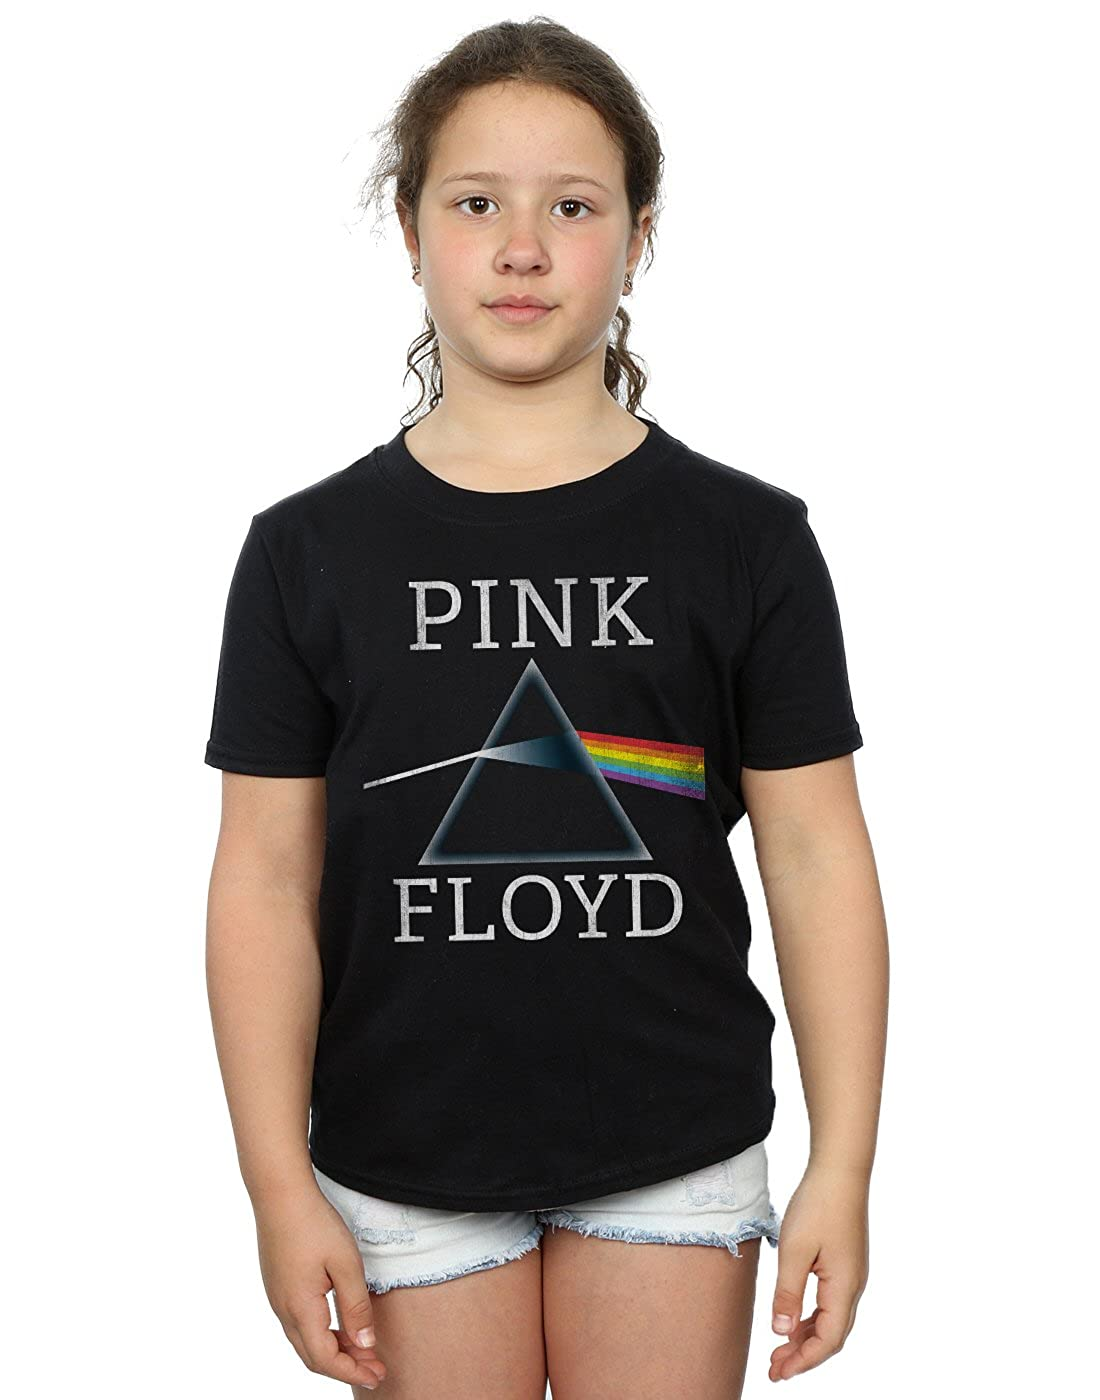 5cc8a5a2 Amazon.com: Pink Floyd Girls Dark Side of The Moon Prism T-Shirt: Clothing